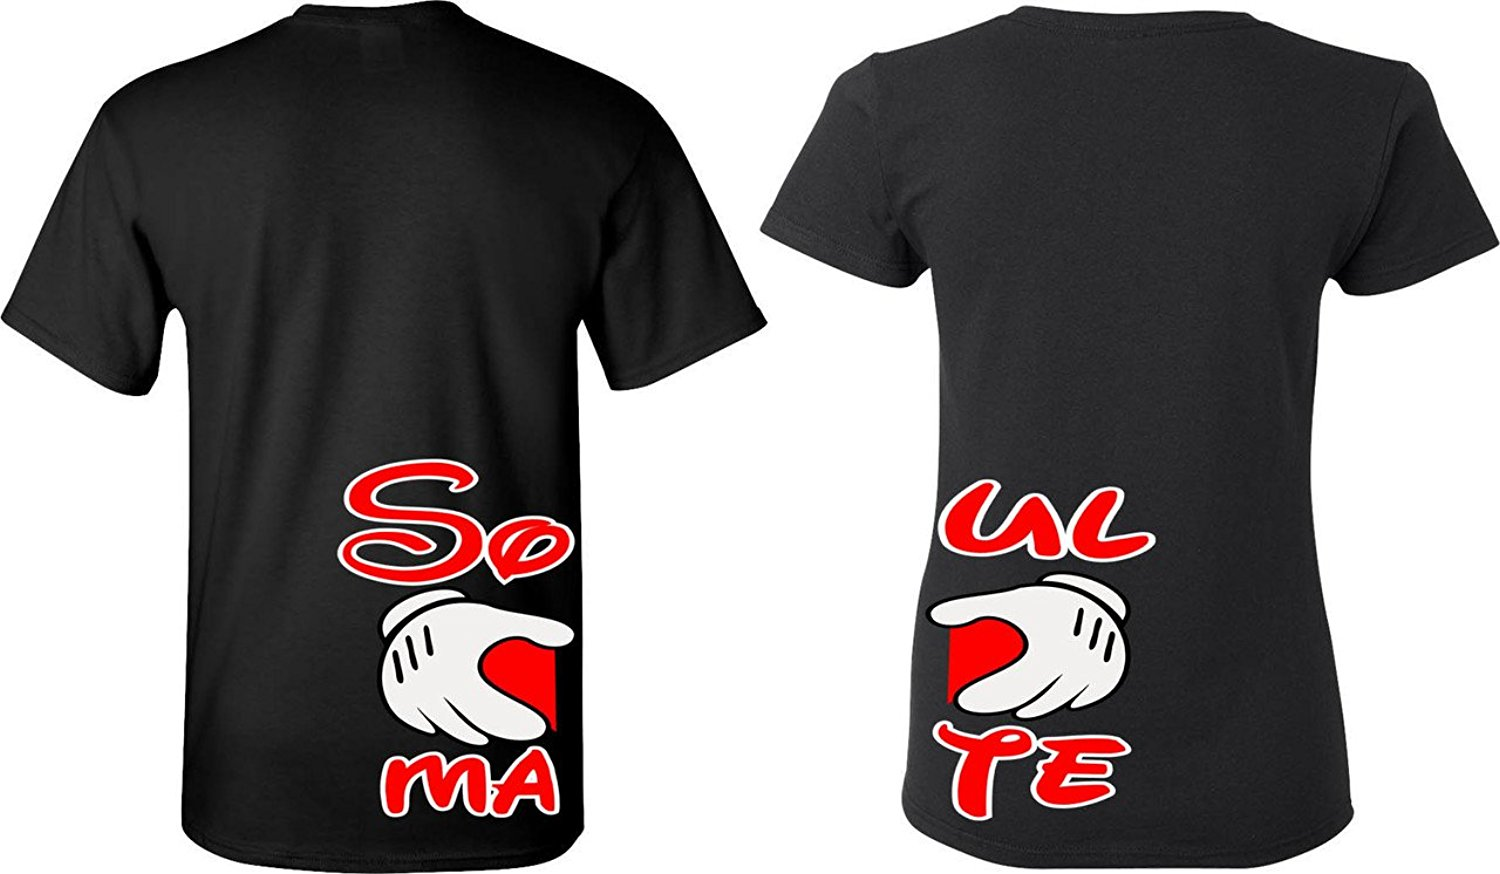 Shirt design price - 2017 New Arrivals Soul Mate Matching Couple Shirts His And Her T Shirts